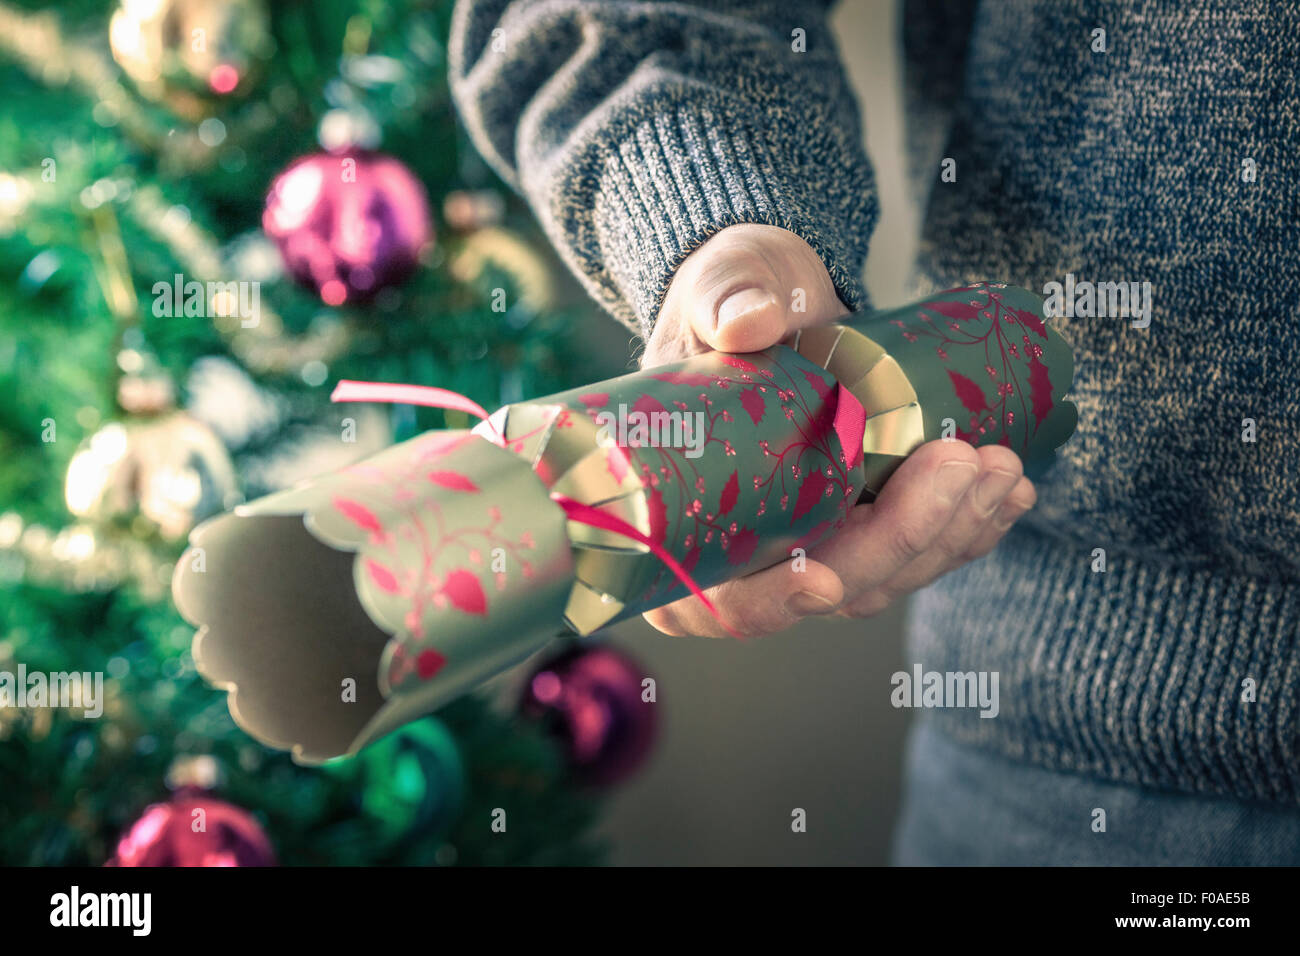 Personne holding Christmas Cracker Photo Stock